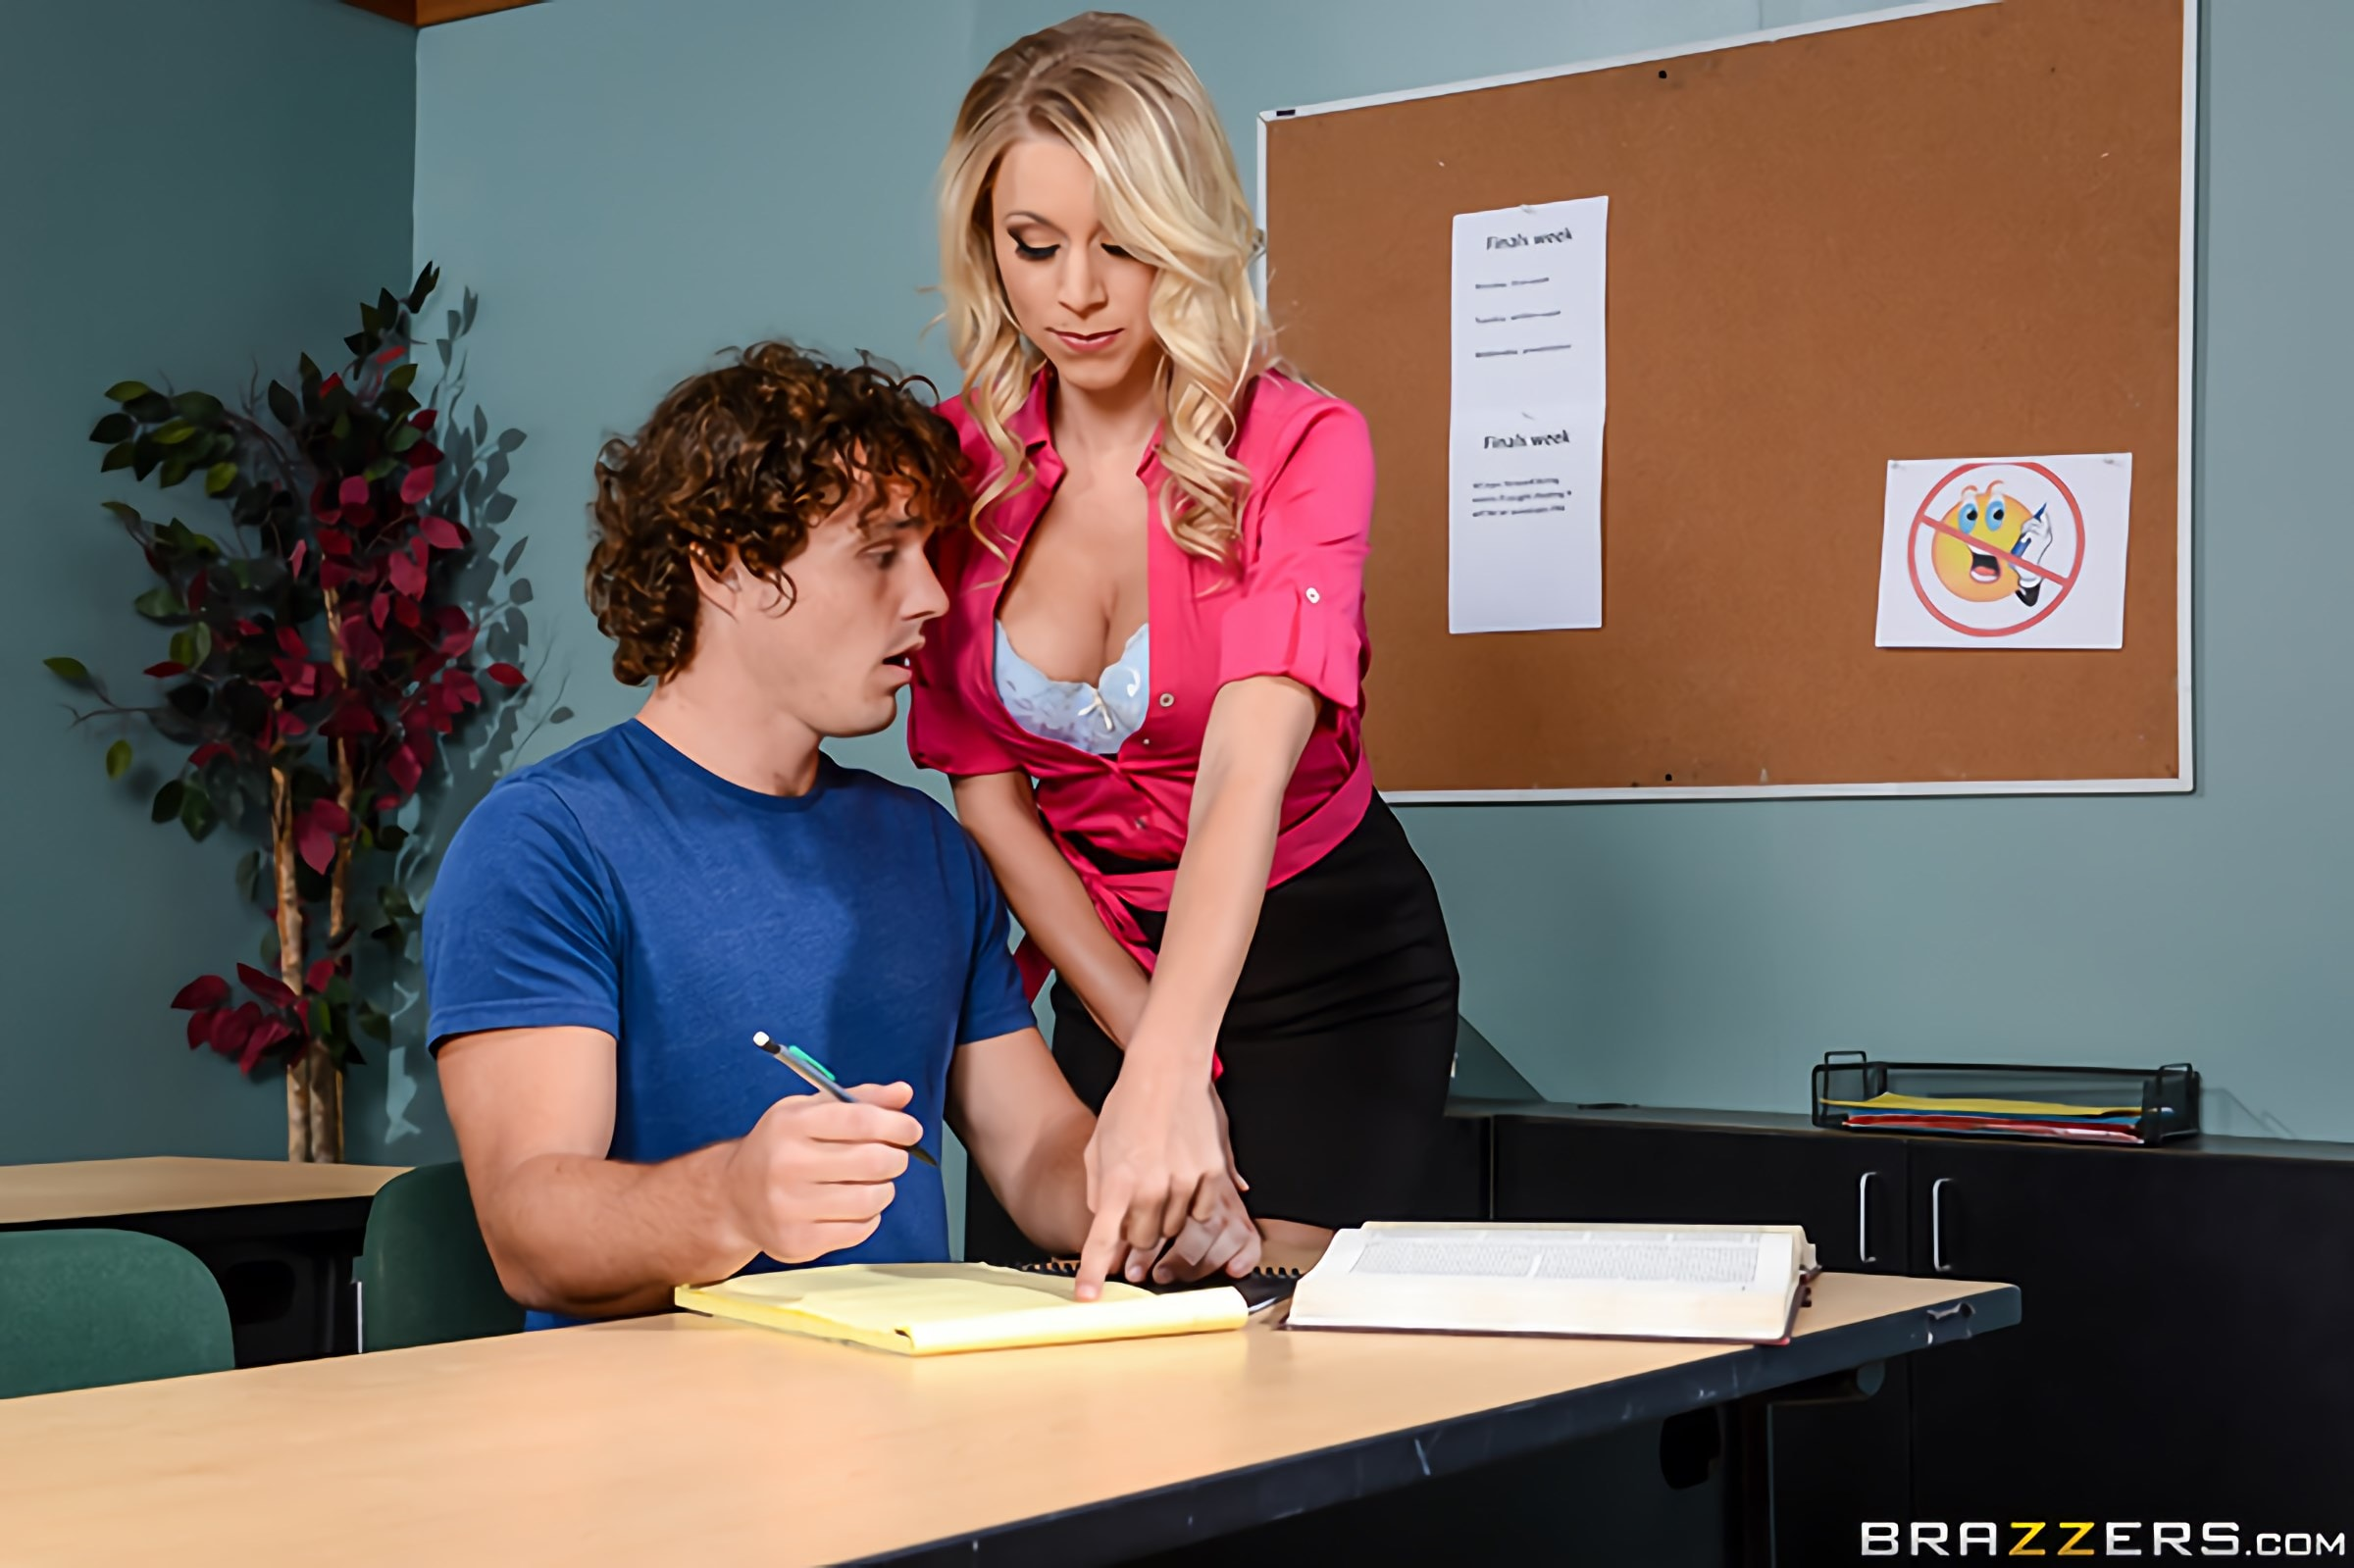 Brazzers 'Teacher Takes Advantage' starring Katie Morgan (Photo 10)